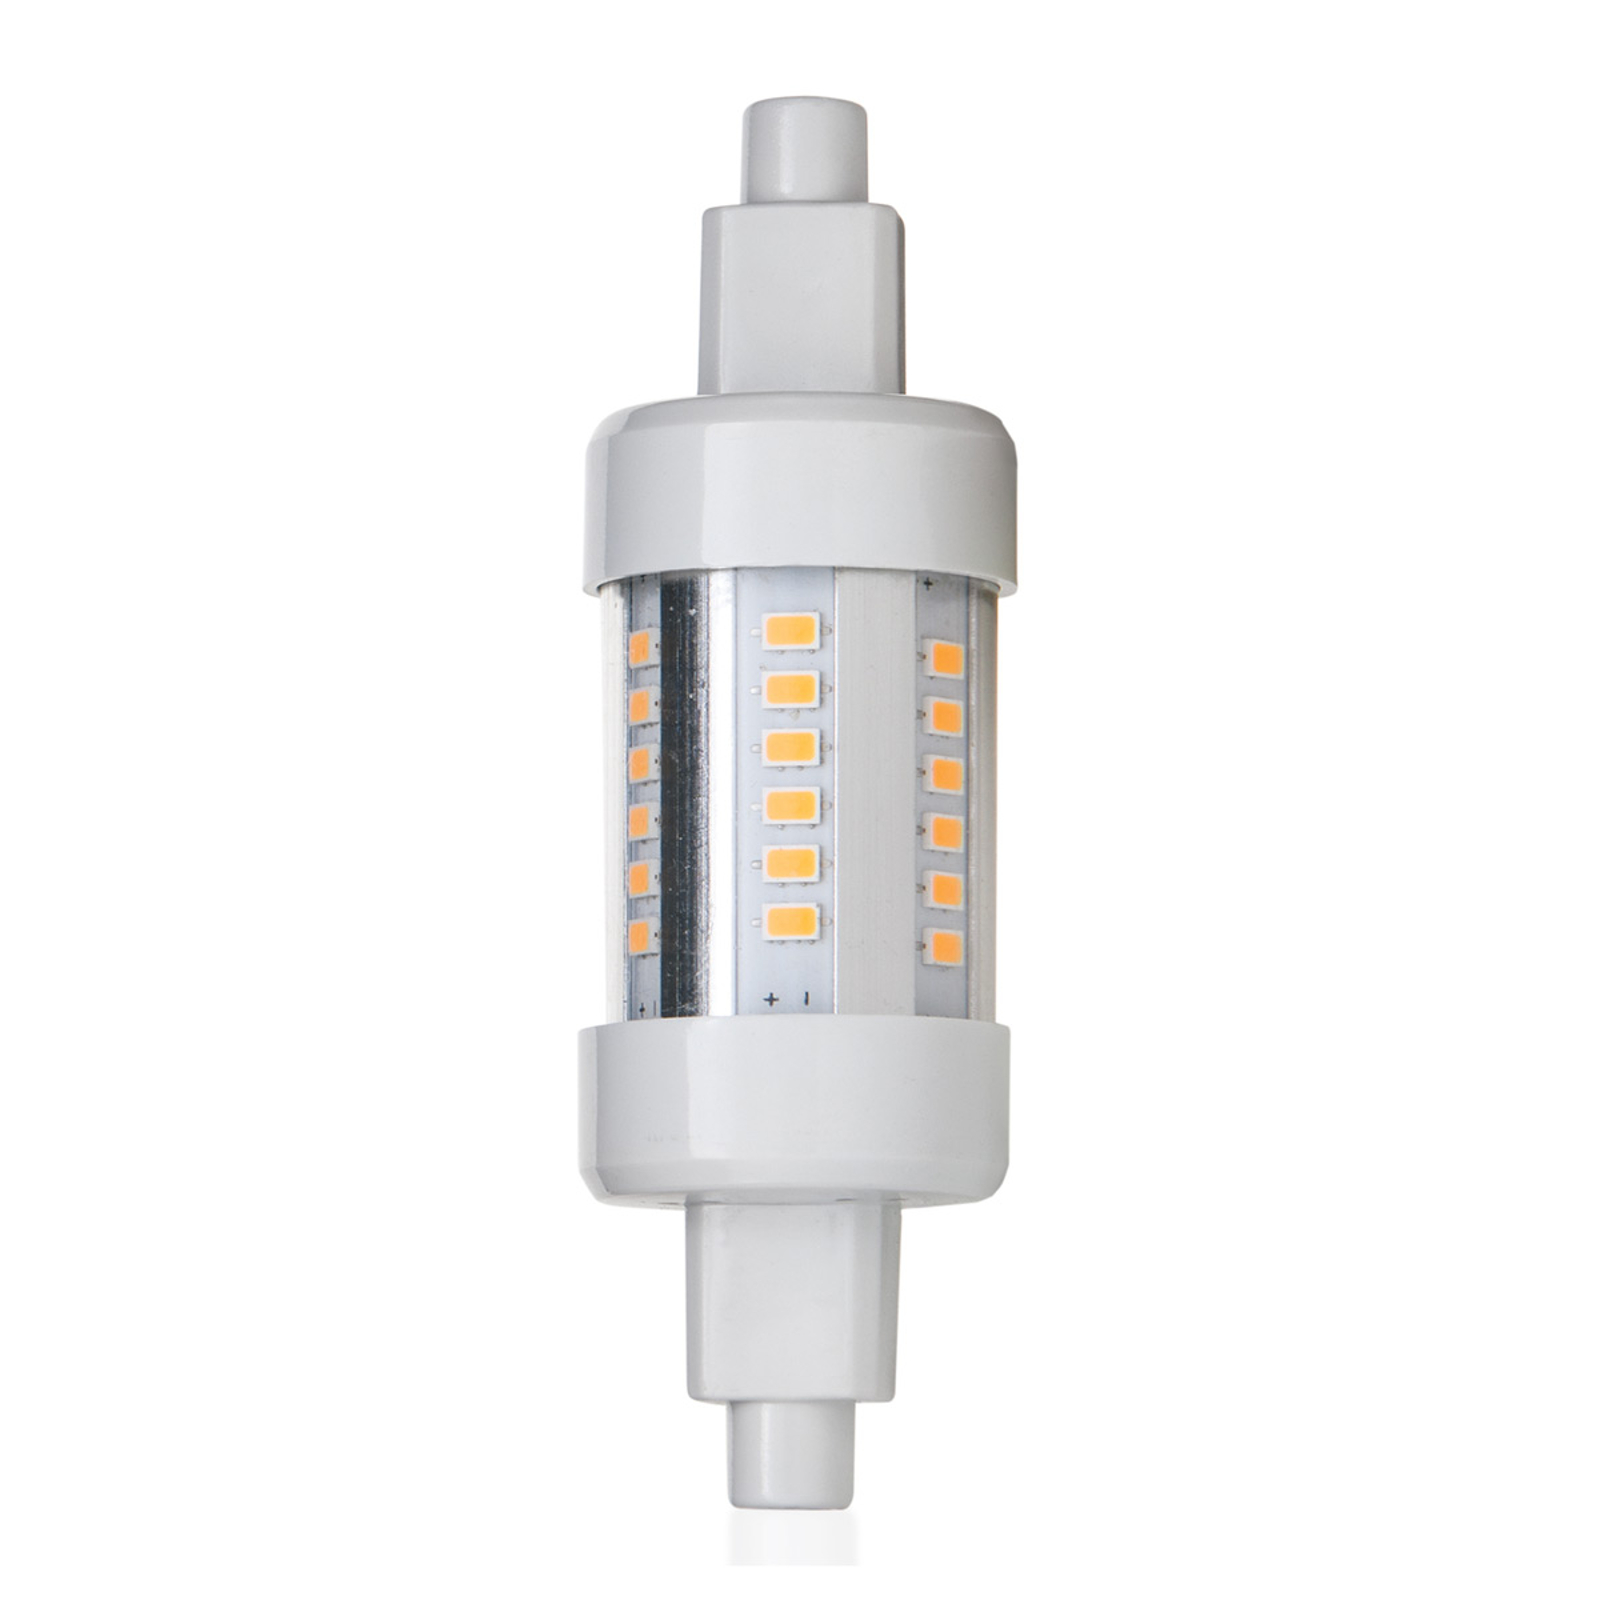 R7s 5W 830 LED-Lampe in Stabform